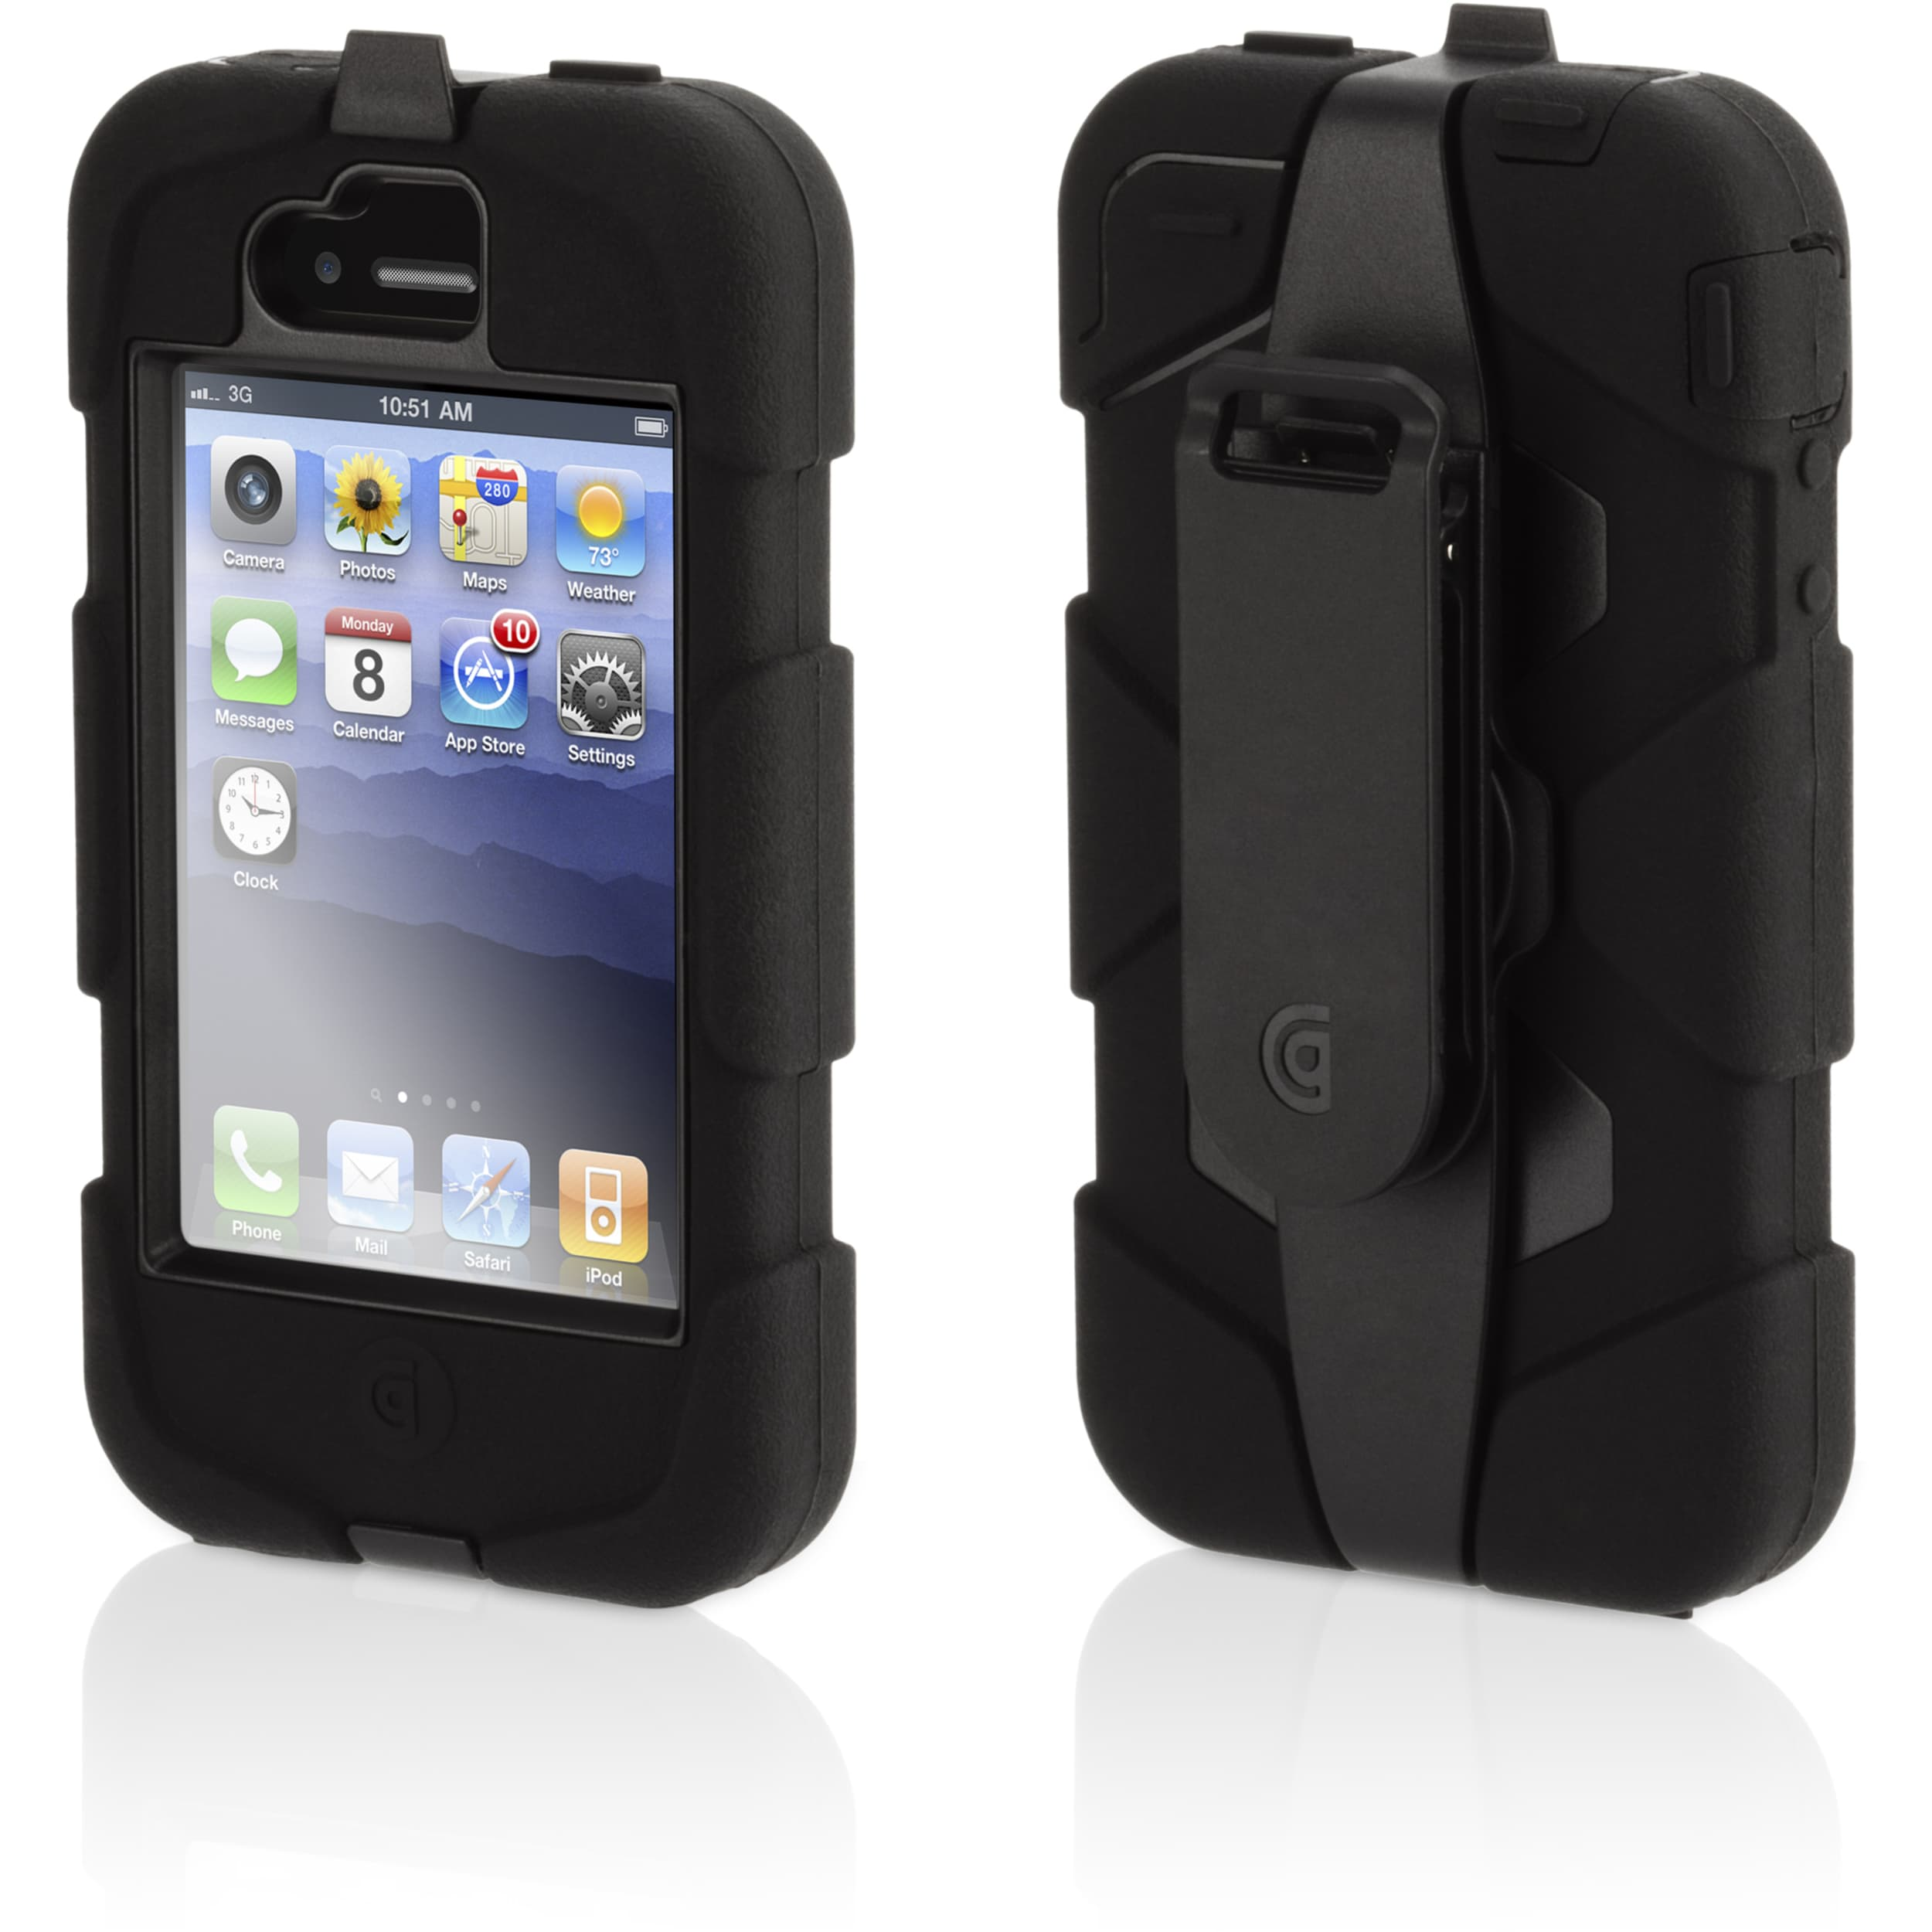 Griffin Survivor GB01902 Carrying Case for iPhone - Black